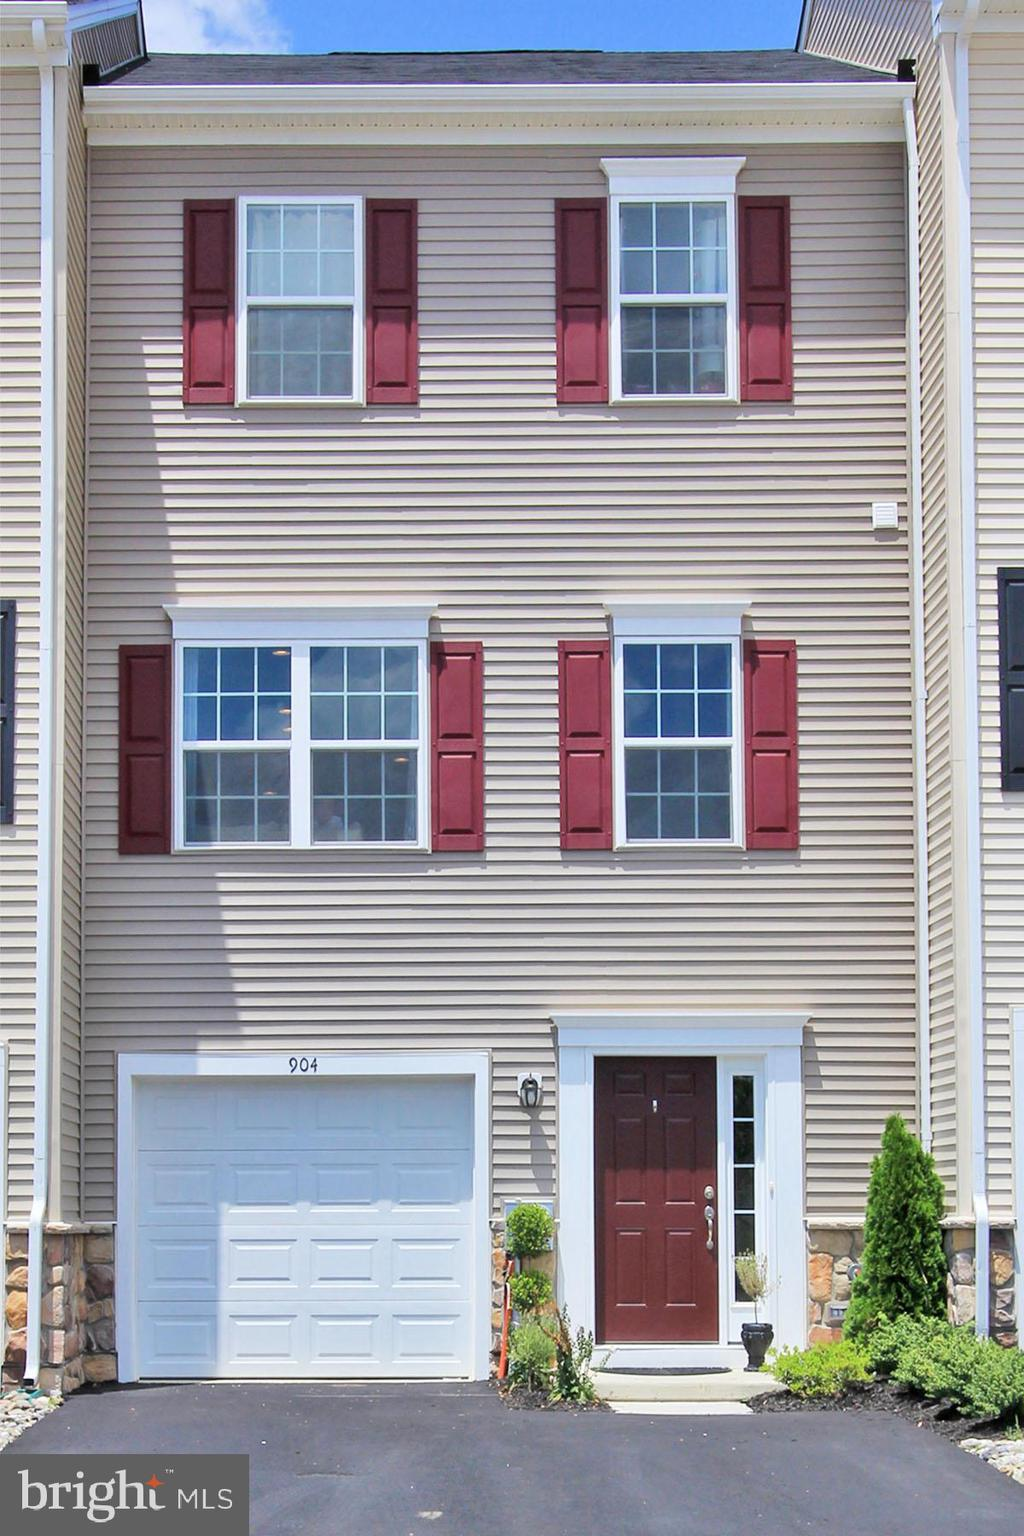 JUST LIKE NEW! MINT CONDITION! Numerous upgrades have been added including the three story bump out giving you additional room on all levels. Enter the foyer to beautiful hardwood flooring leading to the den with sliders and enjoy the backyard summer parties. The main level has a spectacular open floor plan, fantastic for entertaining family and friends. The chef of the home will enjoy preparing meals in the gourmet kitchen having a large center island with classic granite countertops, 42~ cabinets, recessed lighting, and stainless steel appliances.   The upper level offers a large Master bedroom with recessed lighting, master bathroom, along with two additional bedrooms and a hall bath. Conveniently located to the interstate. Better than new and without the 6 month wait!